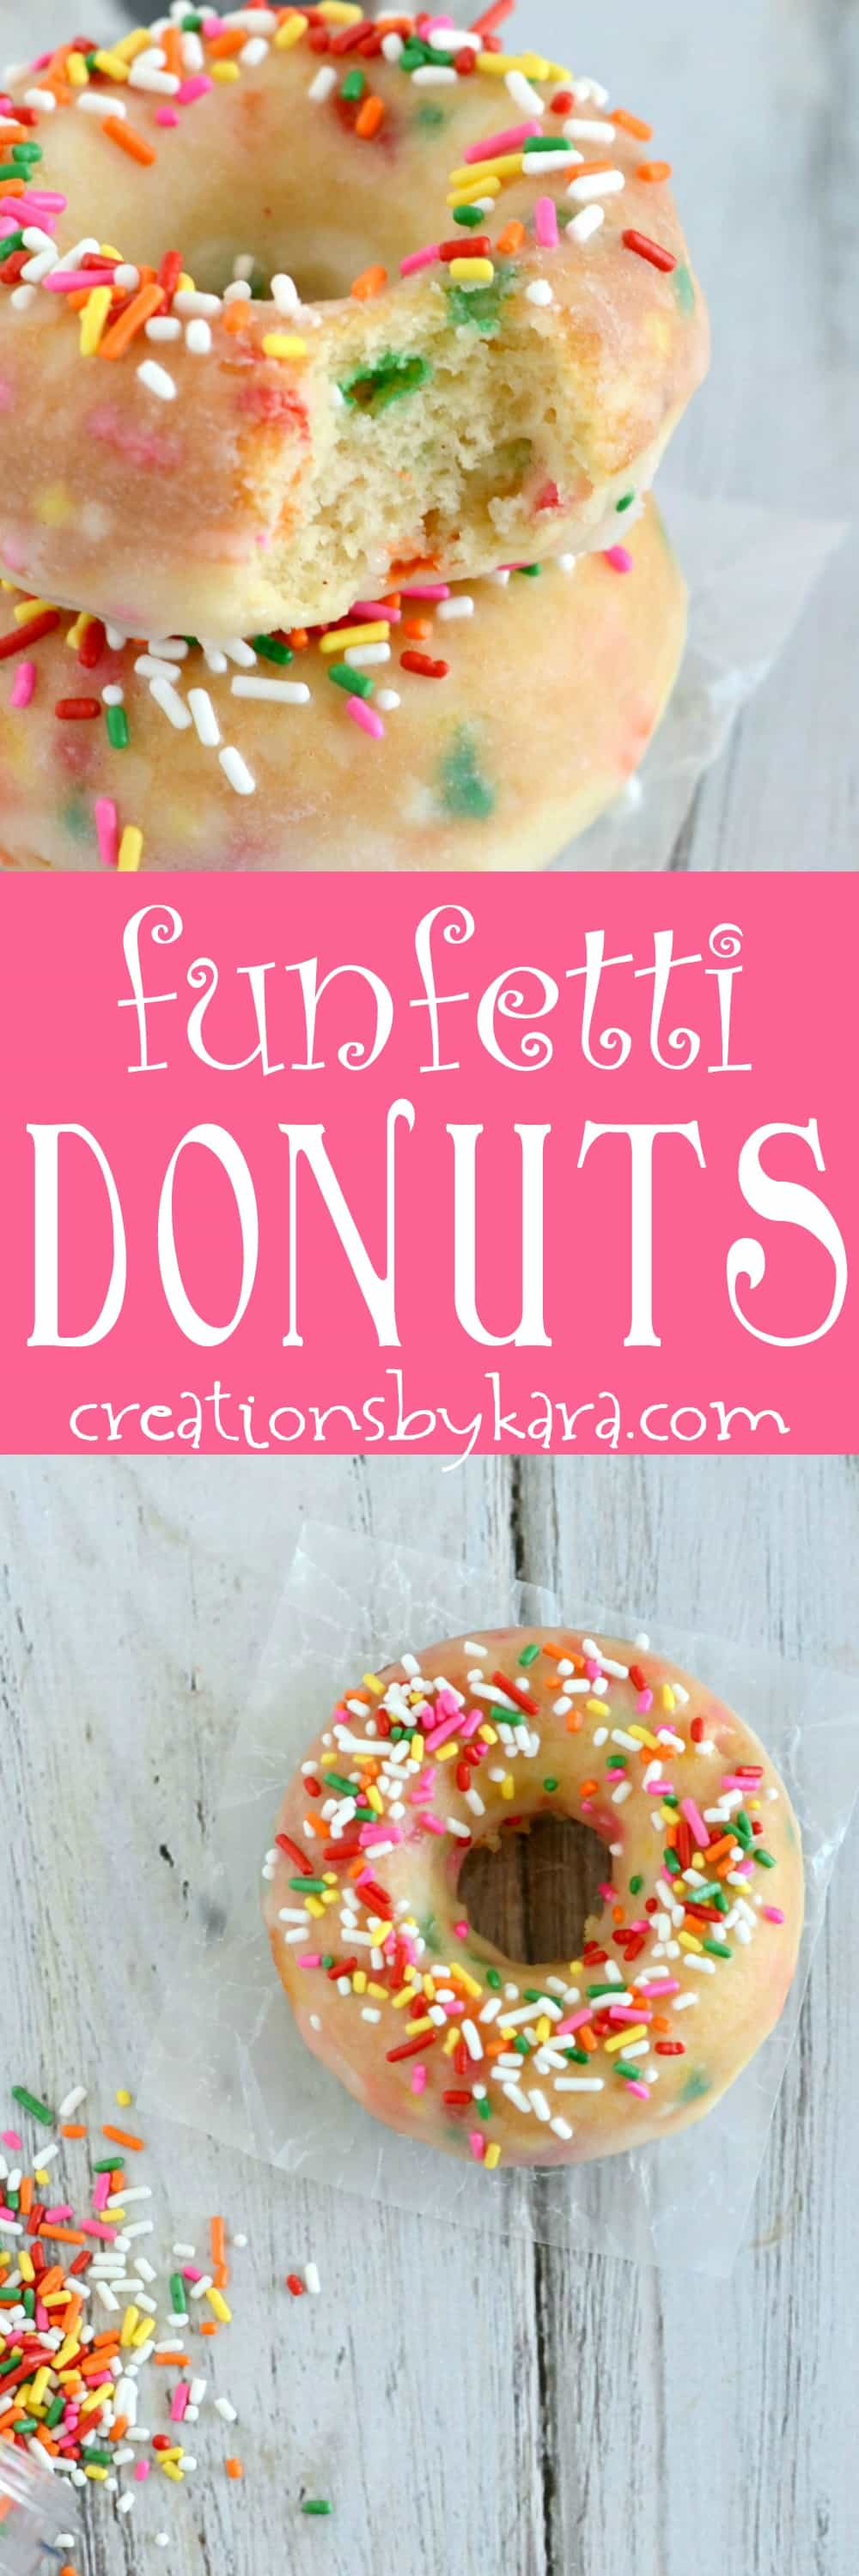 Recipe for baked funfetti donuts. These fun donuts are a favorite with kids and adults alike. A great donut recipe. #bakeddonuts #donutrecipe #funfetti